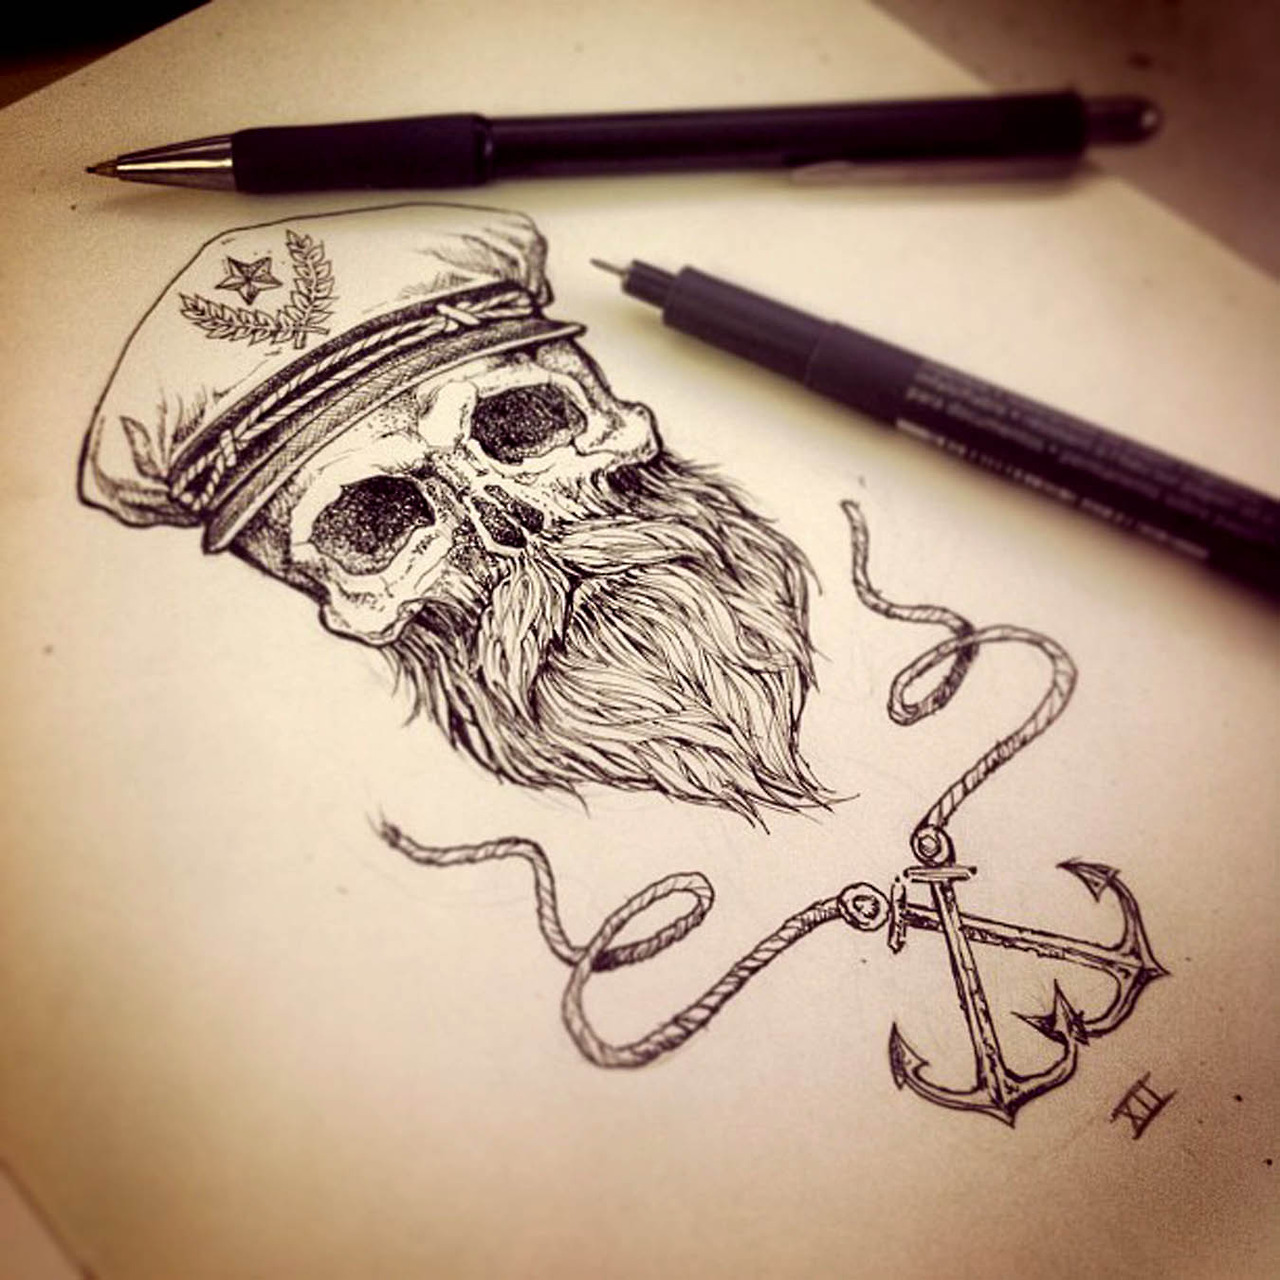 Drawn anchor american traditional Inspiration art nautical awesome Awesome